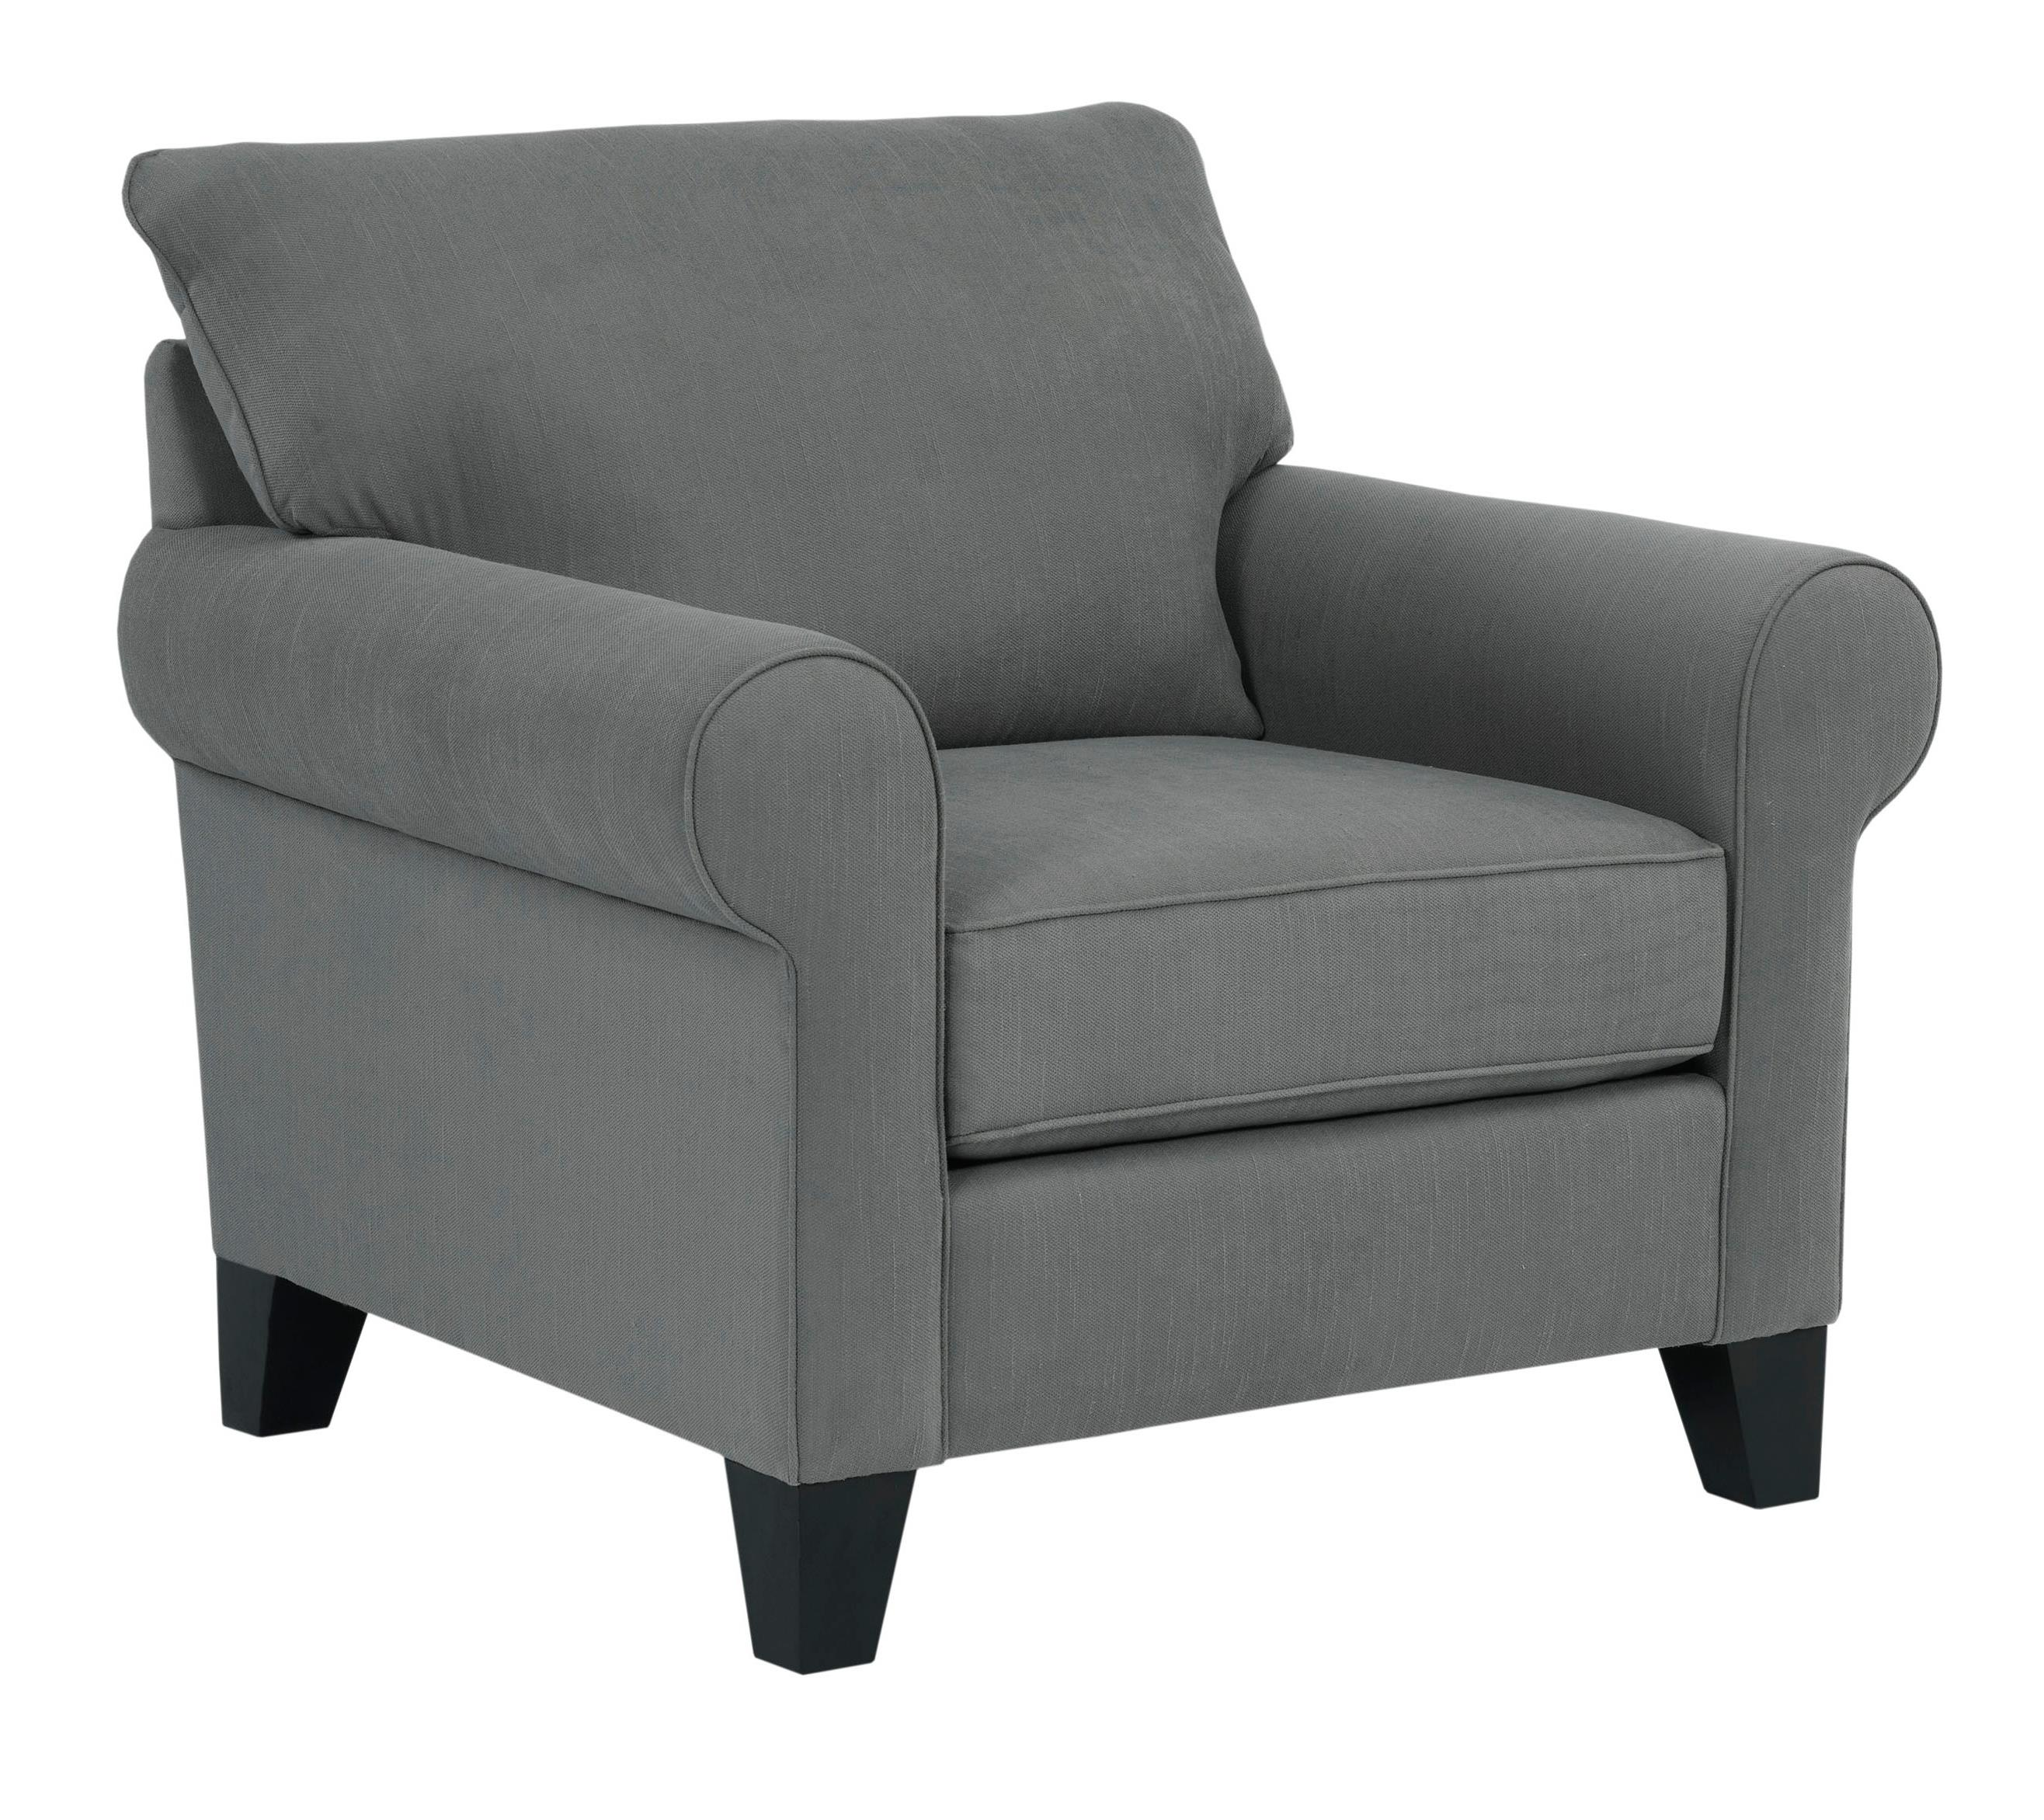 Broyhill Furniture Noda Transitional Chair and a Half - Item Number: 4230-0-4073-94